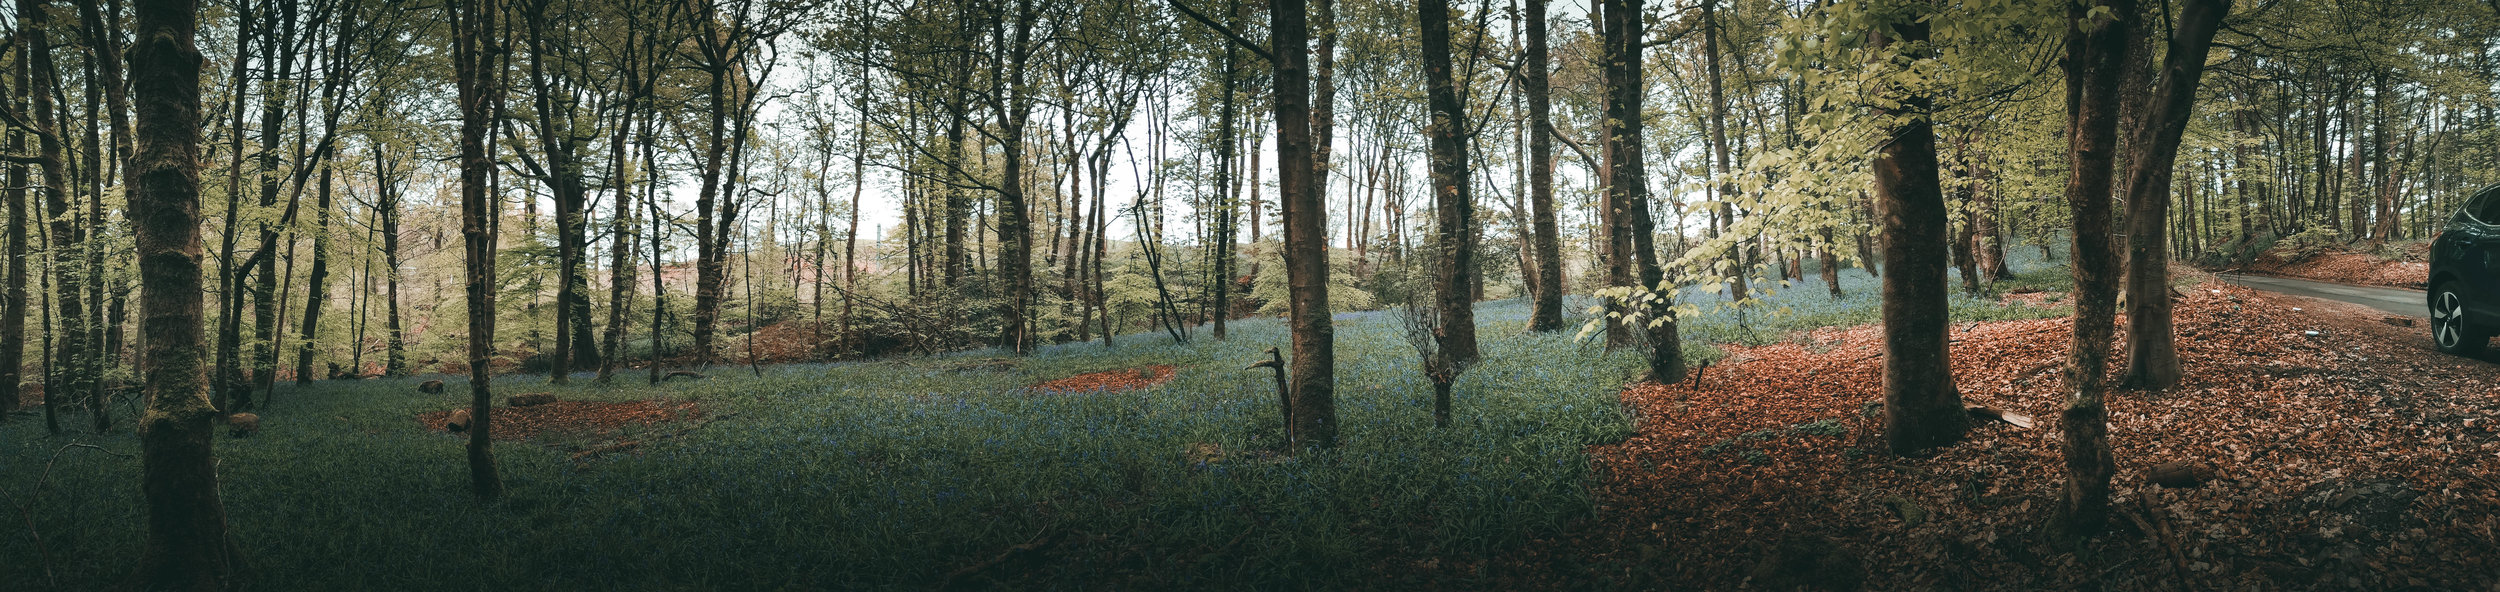 Panoramic image of bluebells in Cumbernauld